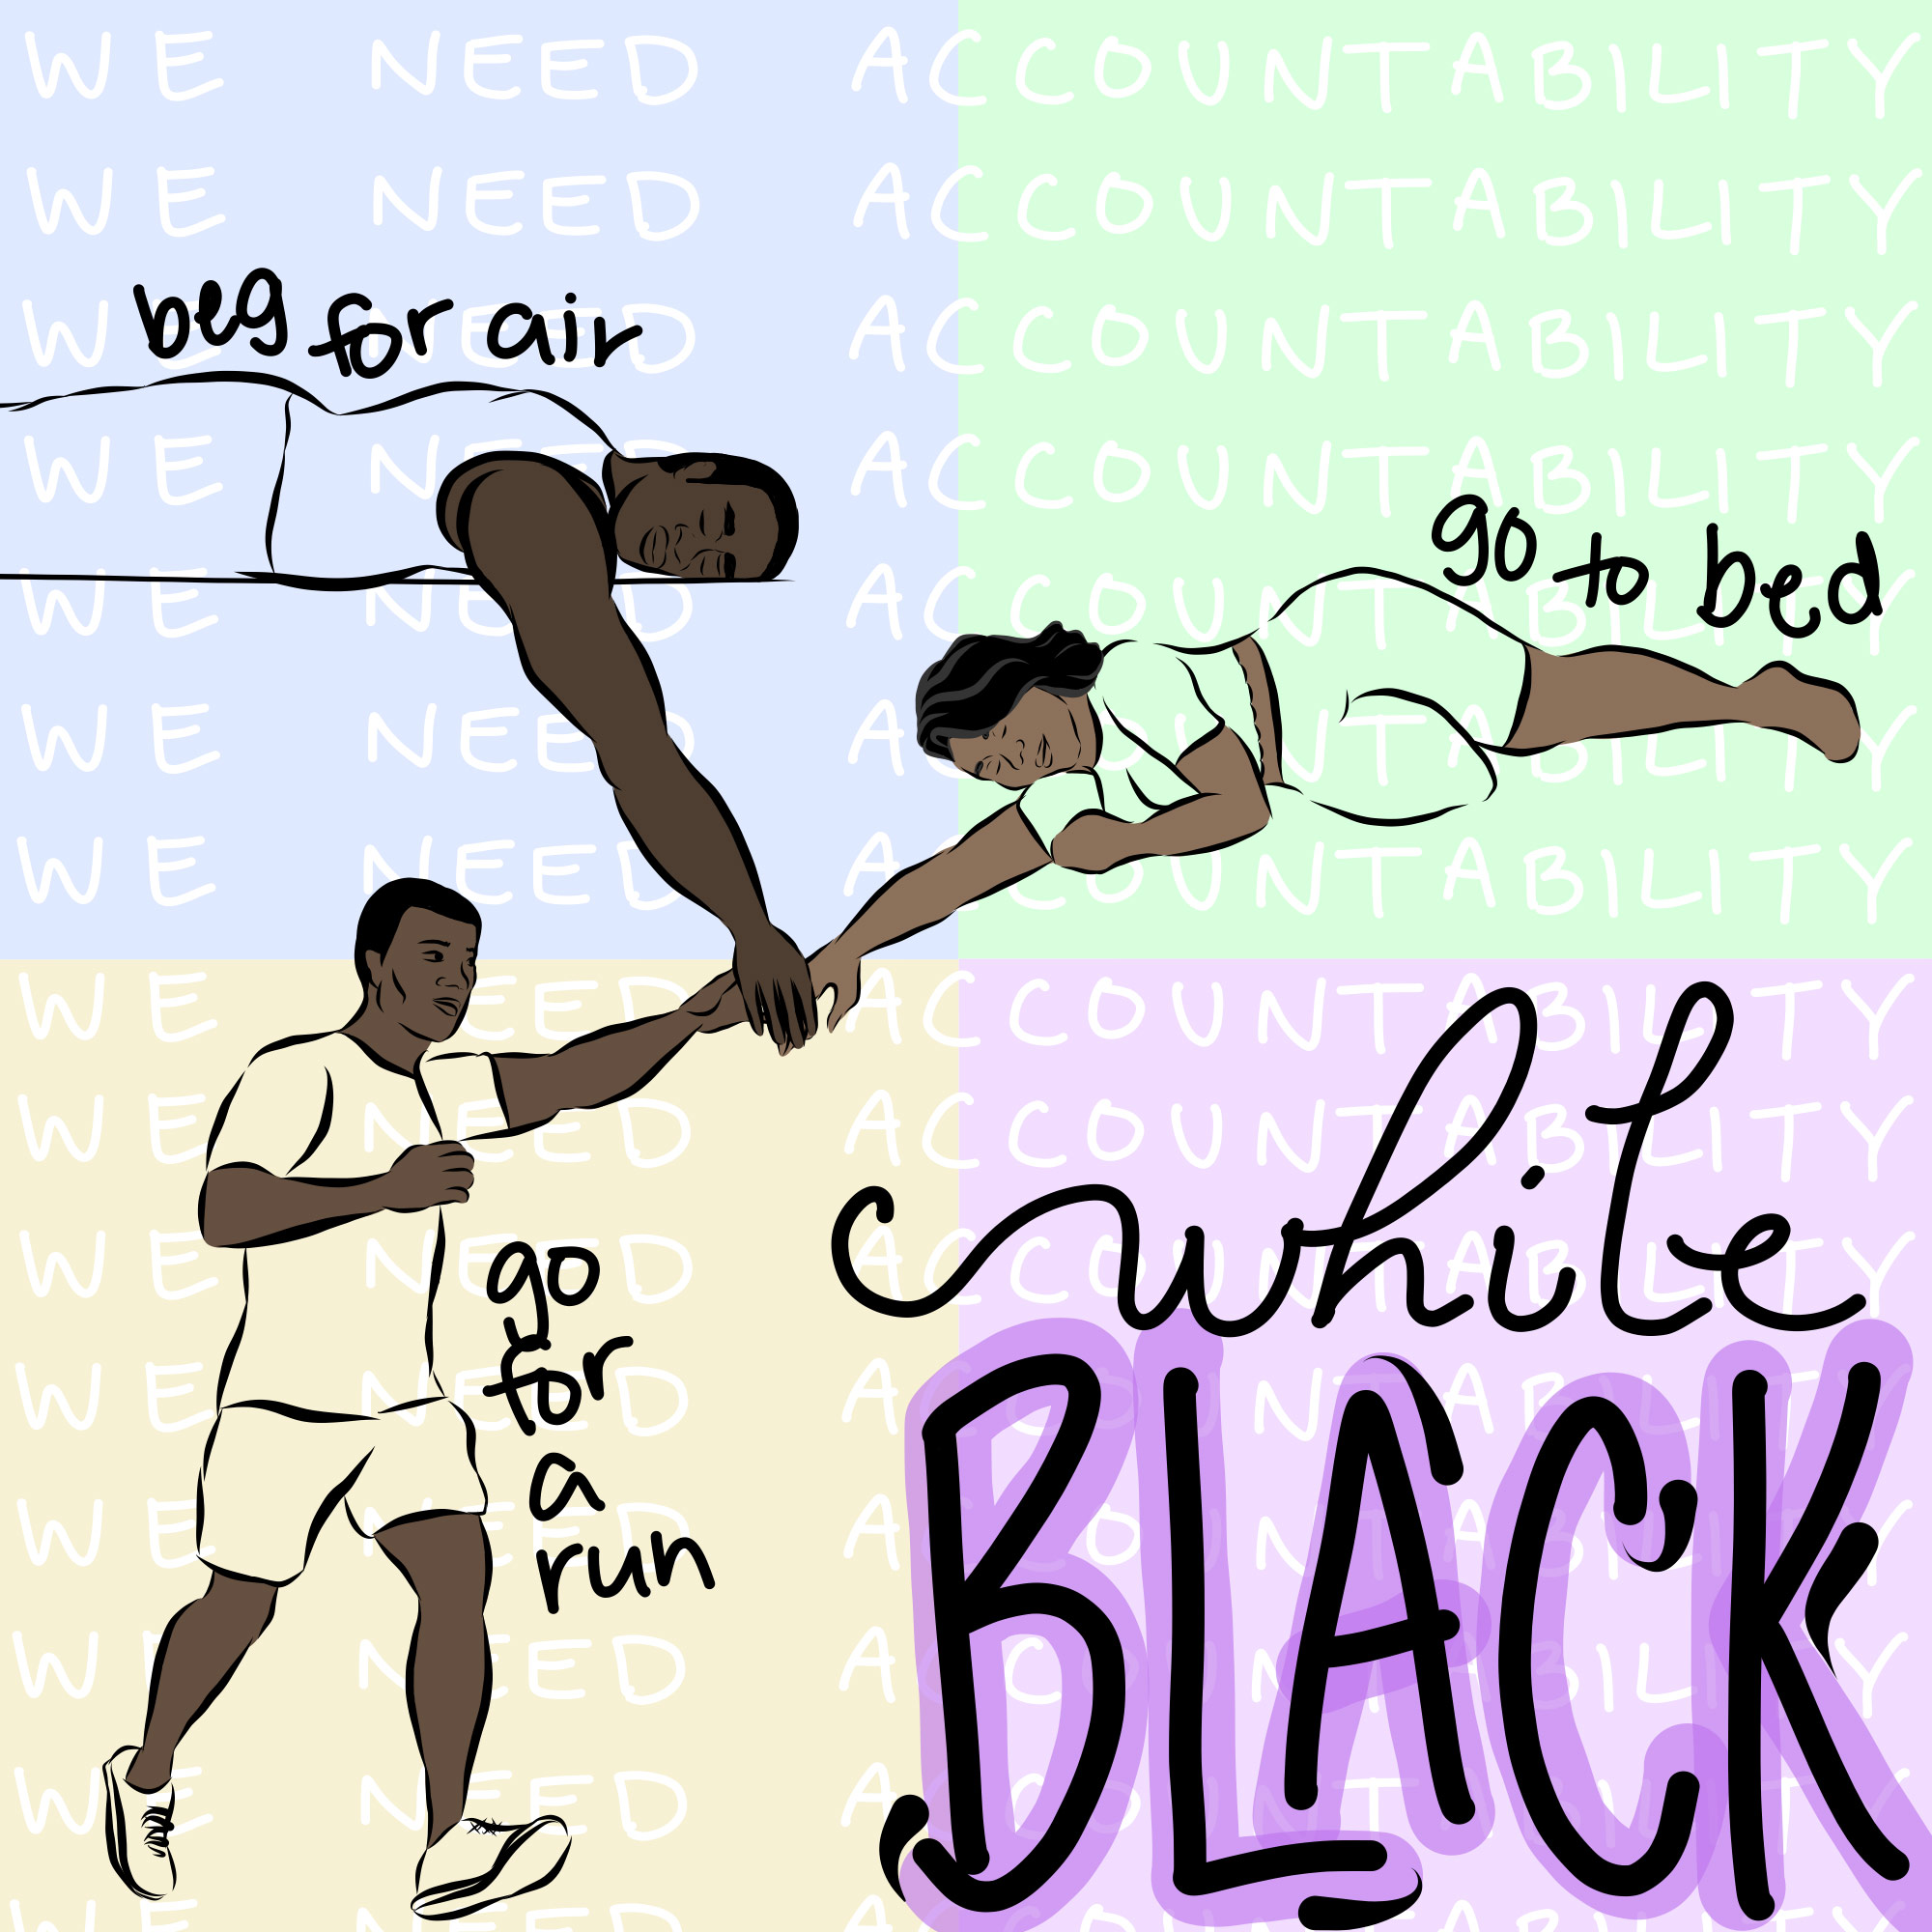 Beg for air, go to bed, go for a run...while black.